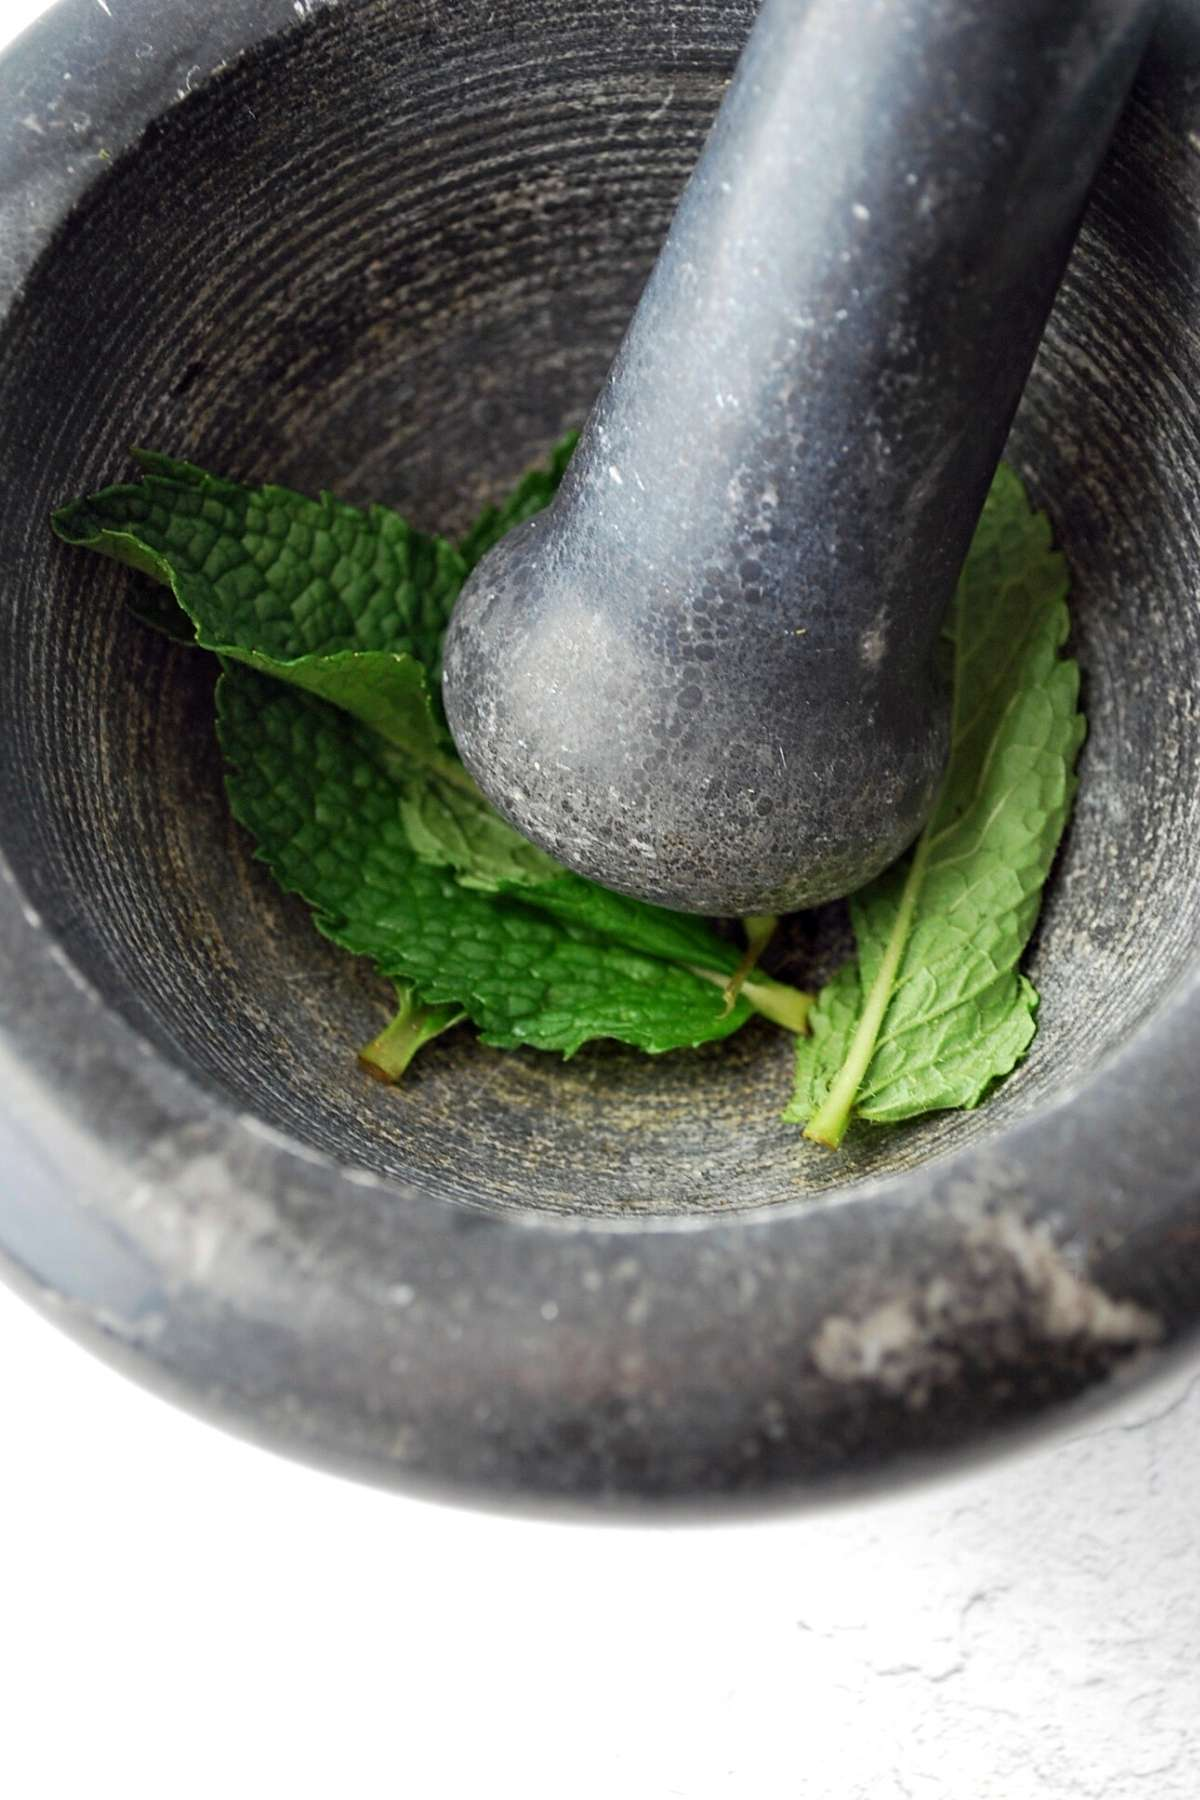 muddling mint in a mortar and pestle